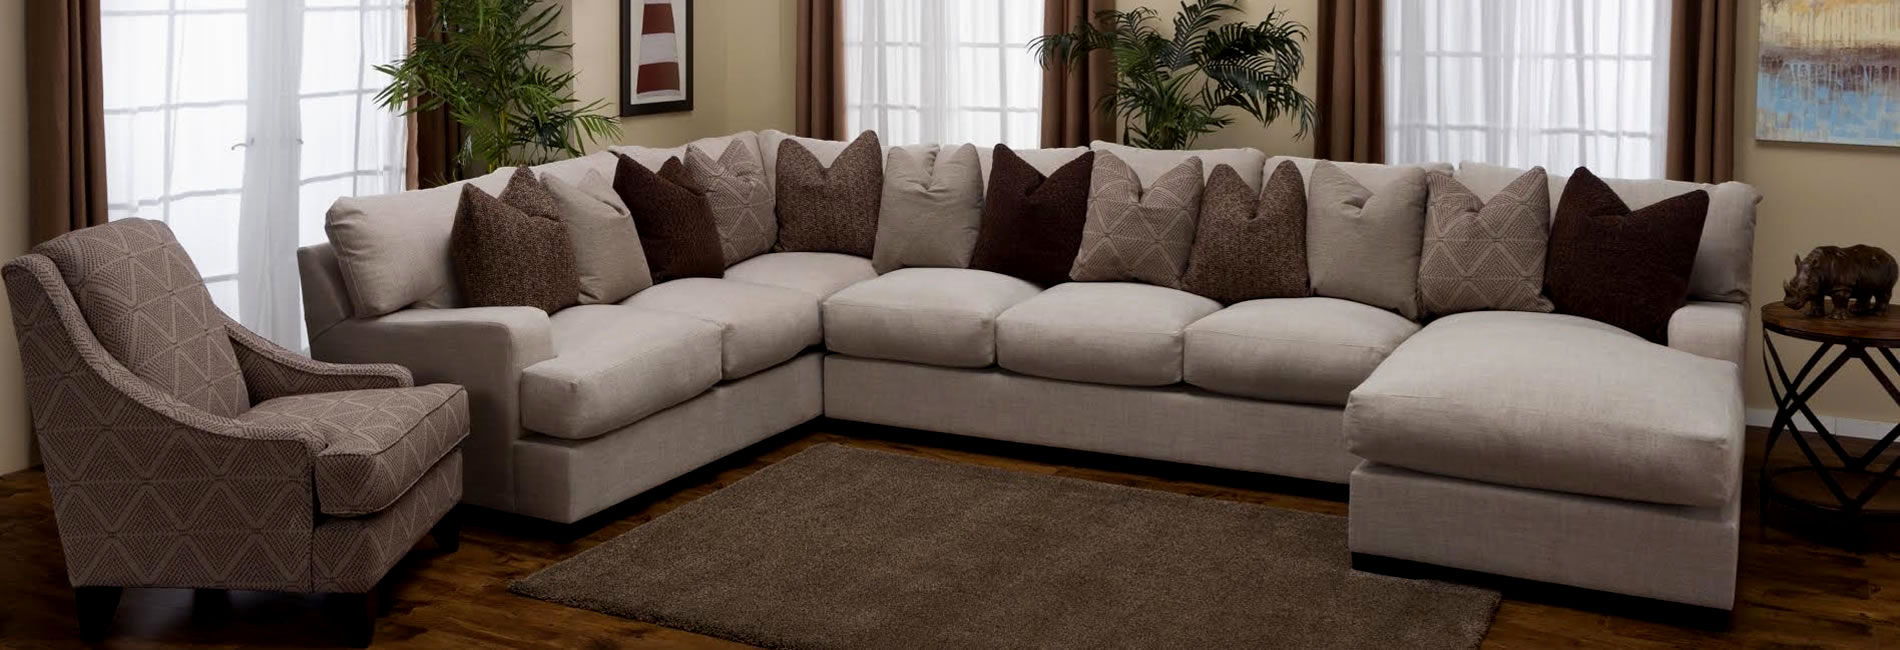 beautiful cheap sofas under 200 online-Luxury Cheap sofas Under 200 Collection